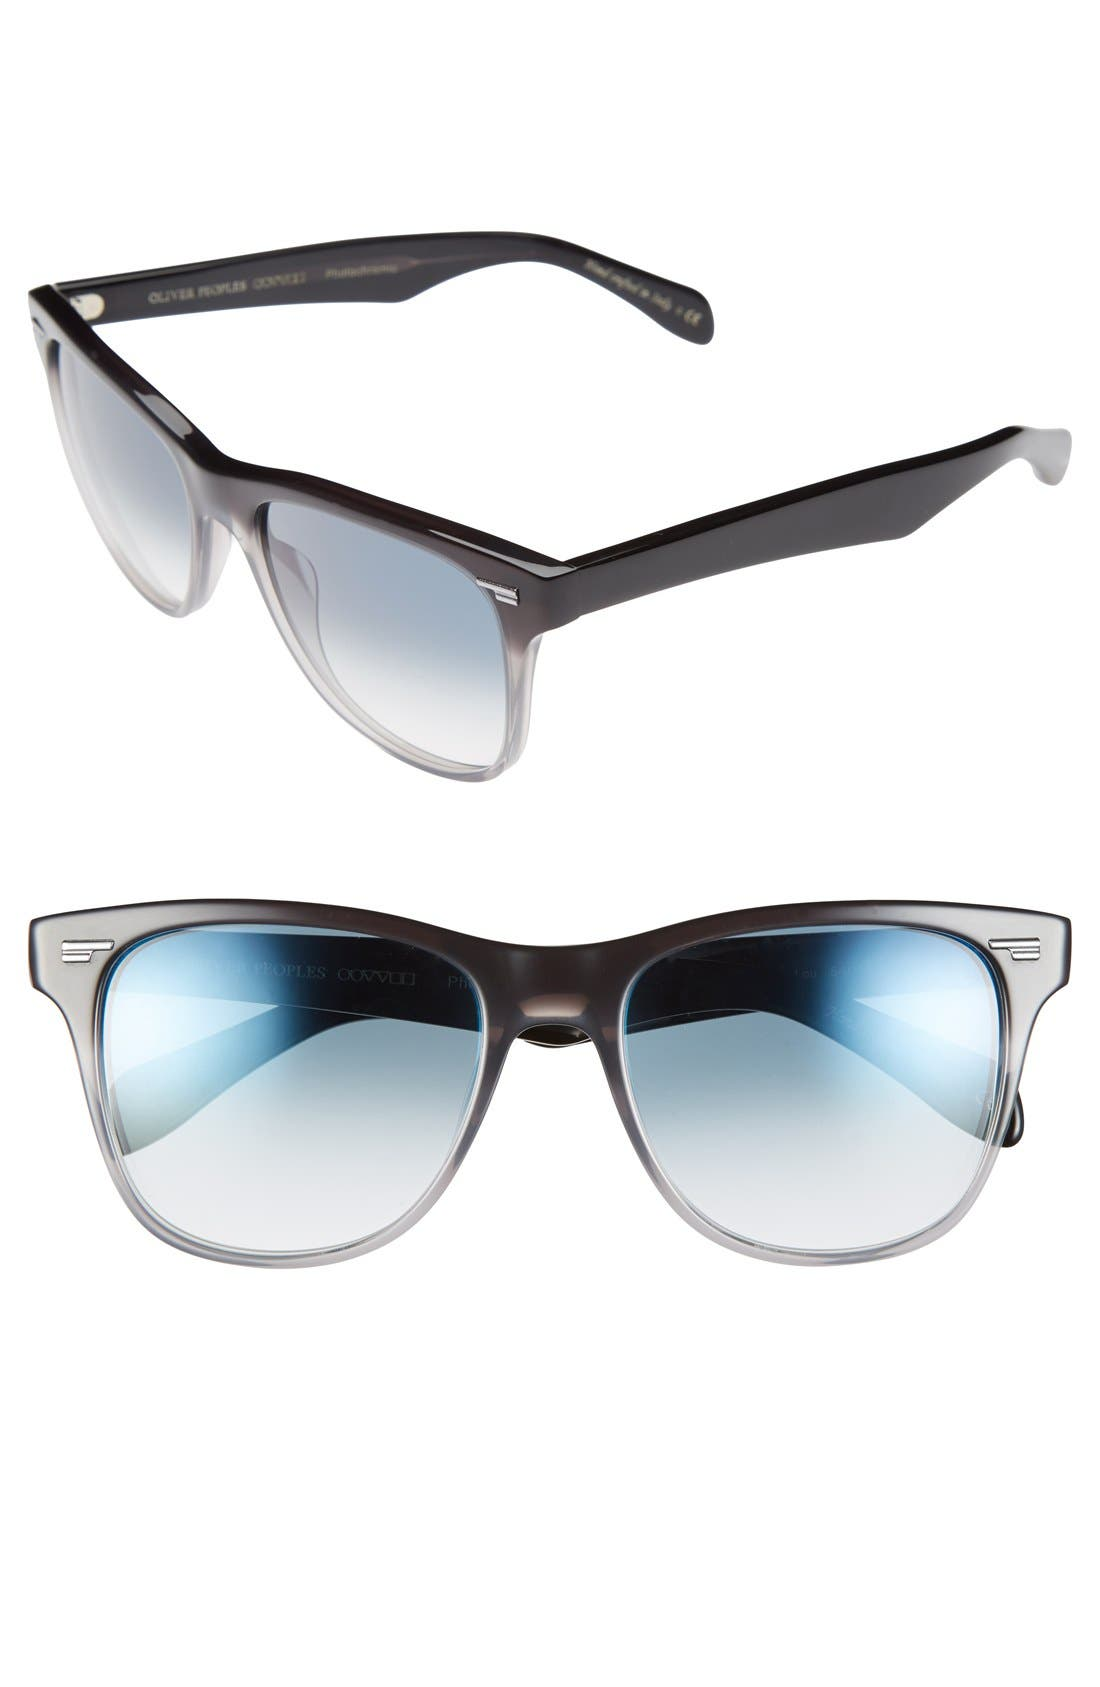 Main Image - Oliver Peoples 'Lou' 54mm Sunglasses